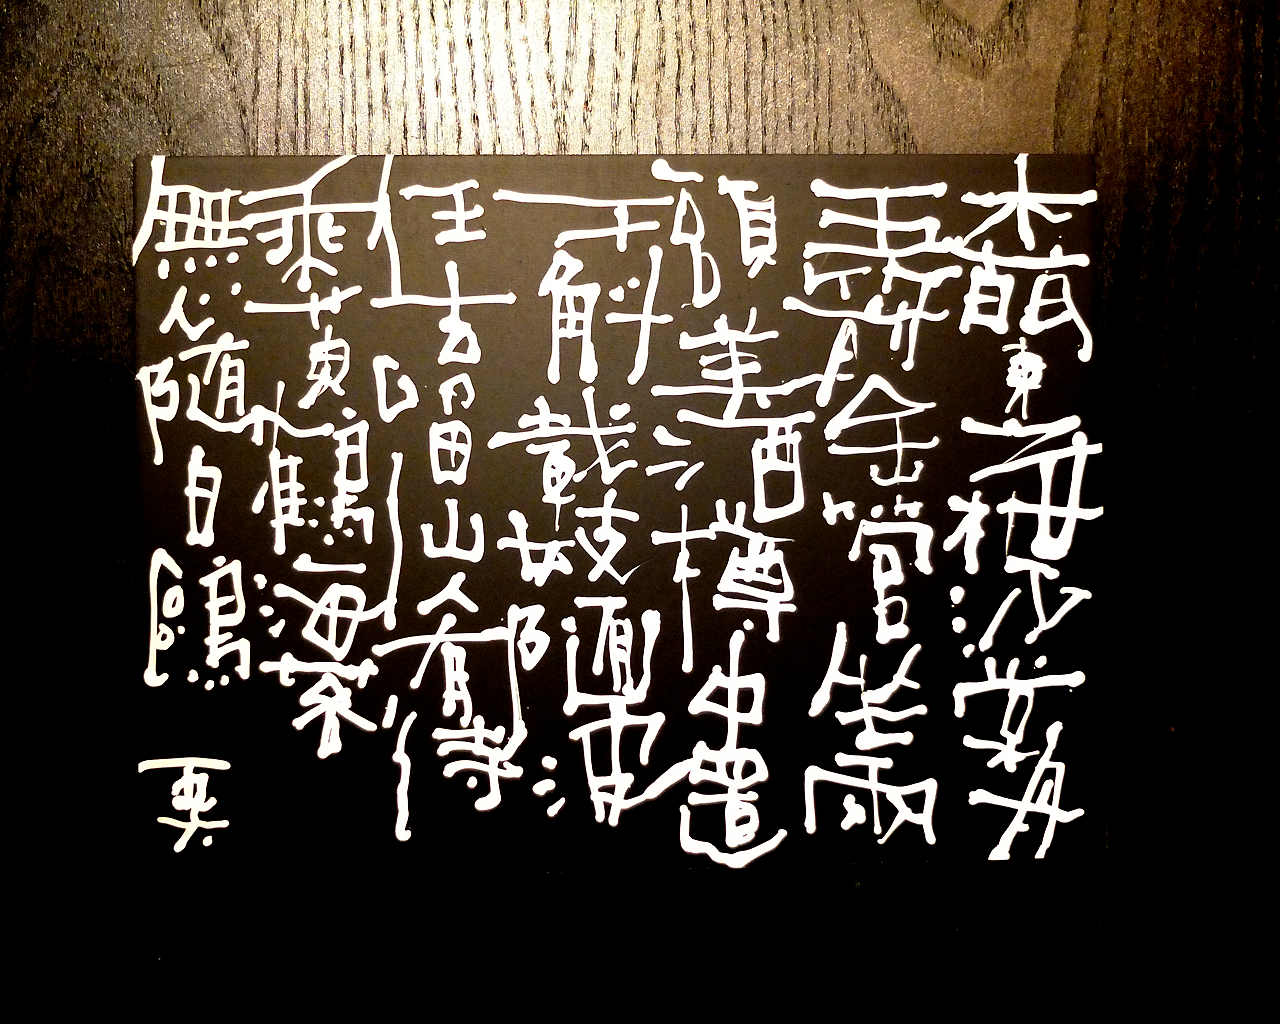 李白の漢詩 - chinese poetry by Li Bai